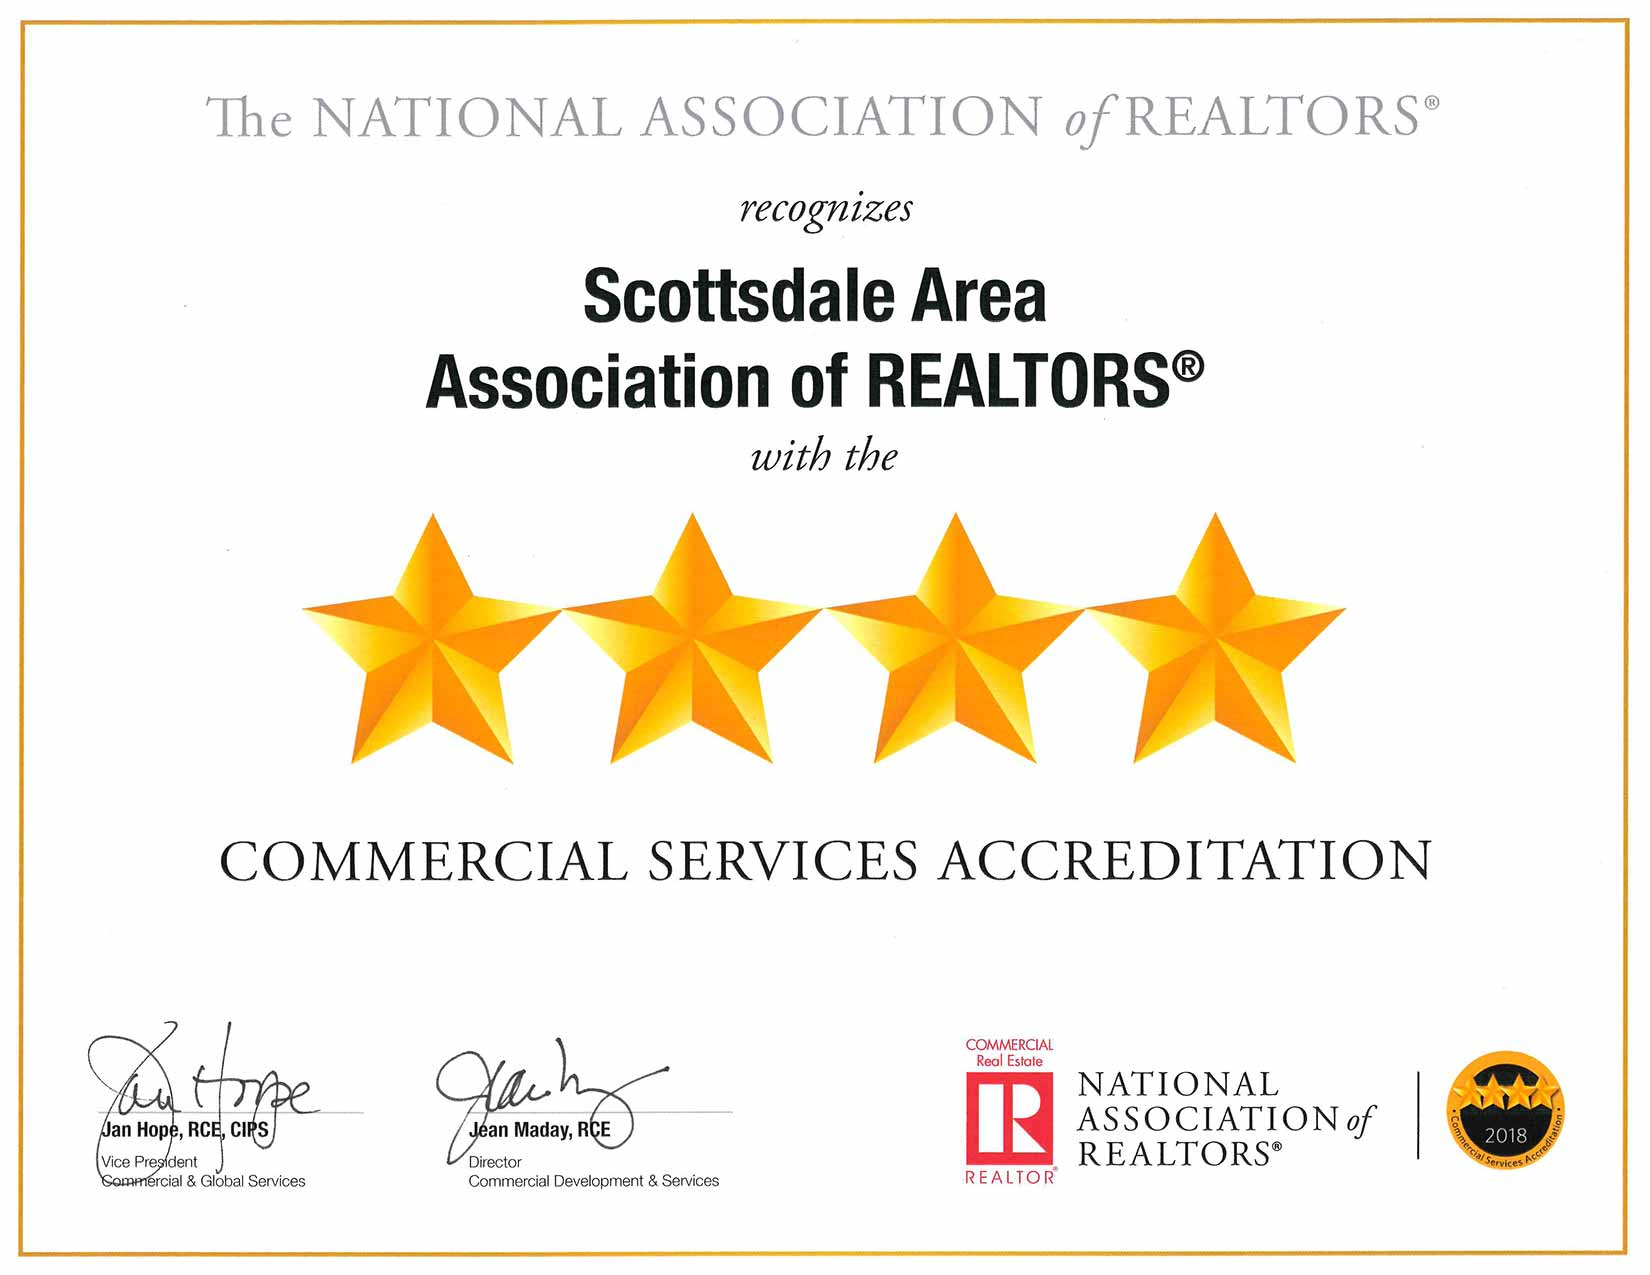 NAR-2018-Commercial-Services-Accreditation-cert.pdf